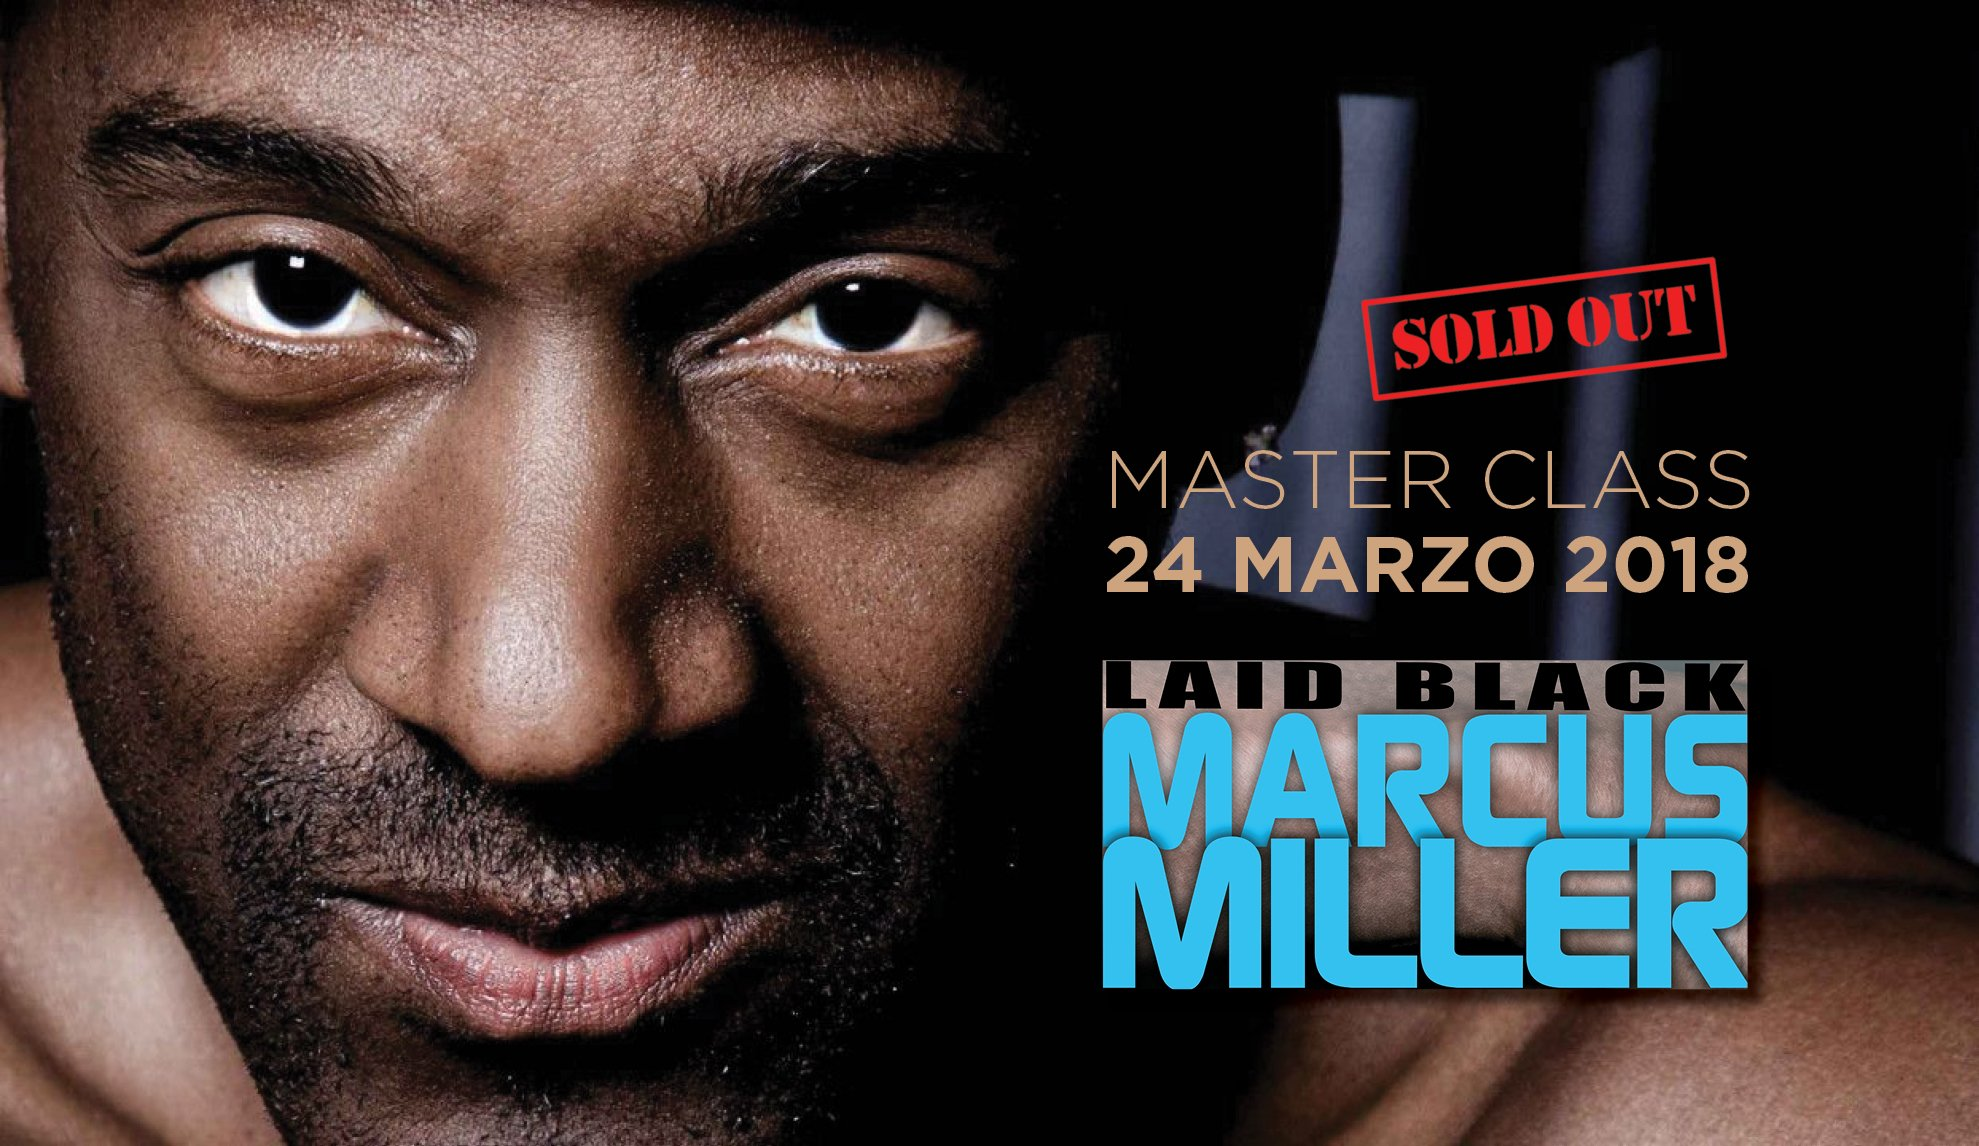 Marcus Miller Master class al saint louis colle of music